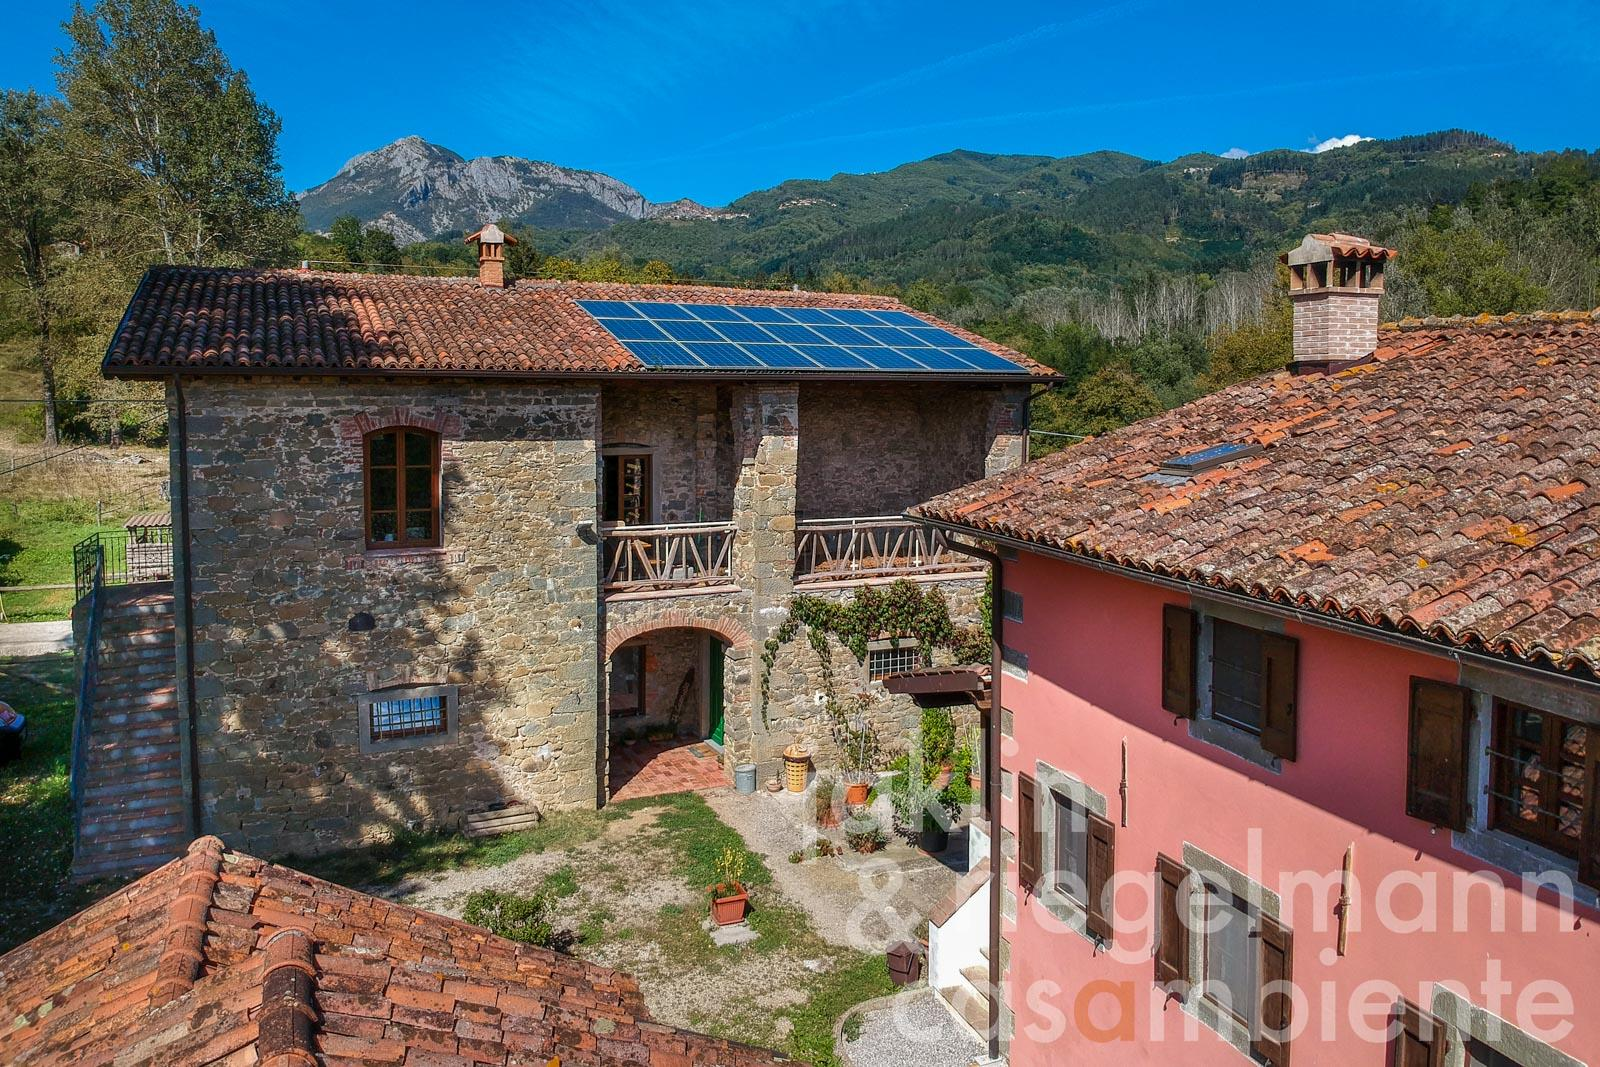 Agriturismo in the hinterland of Lucca in Tuscany with several buildings, pool, equestrian area and 14 ha of land